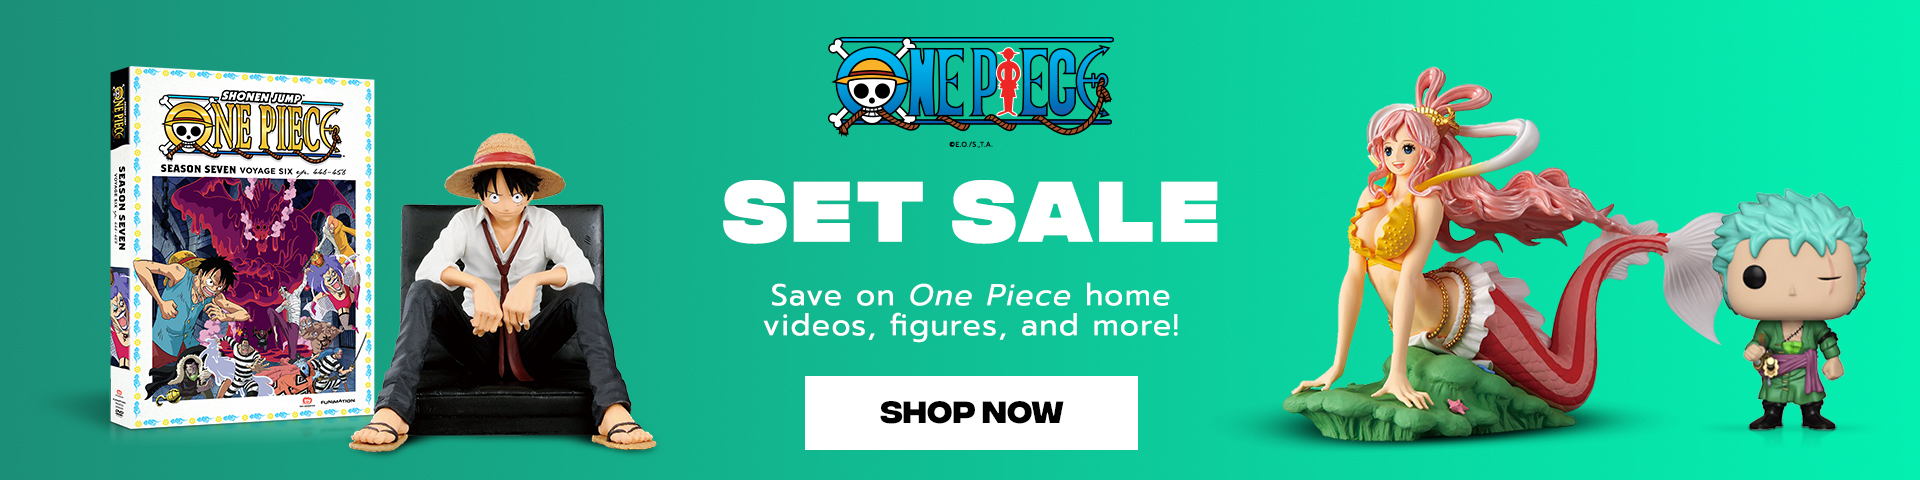 Set Sale. Save on One Piece home videos, figures, and more!